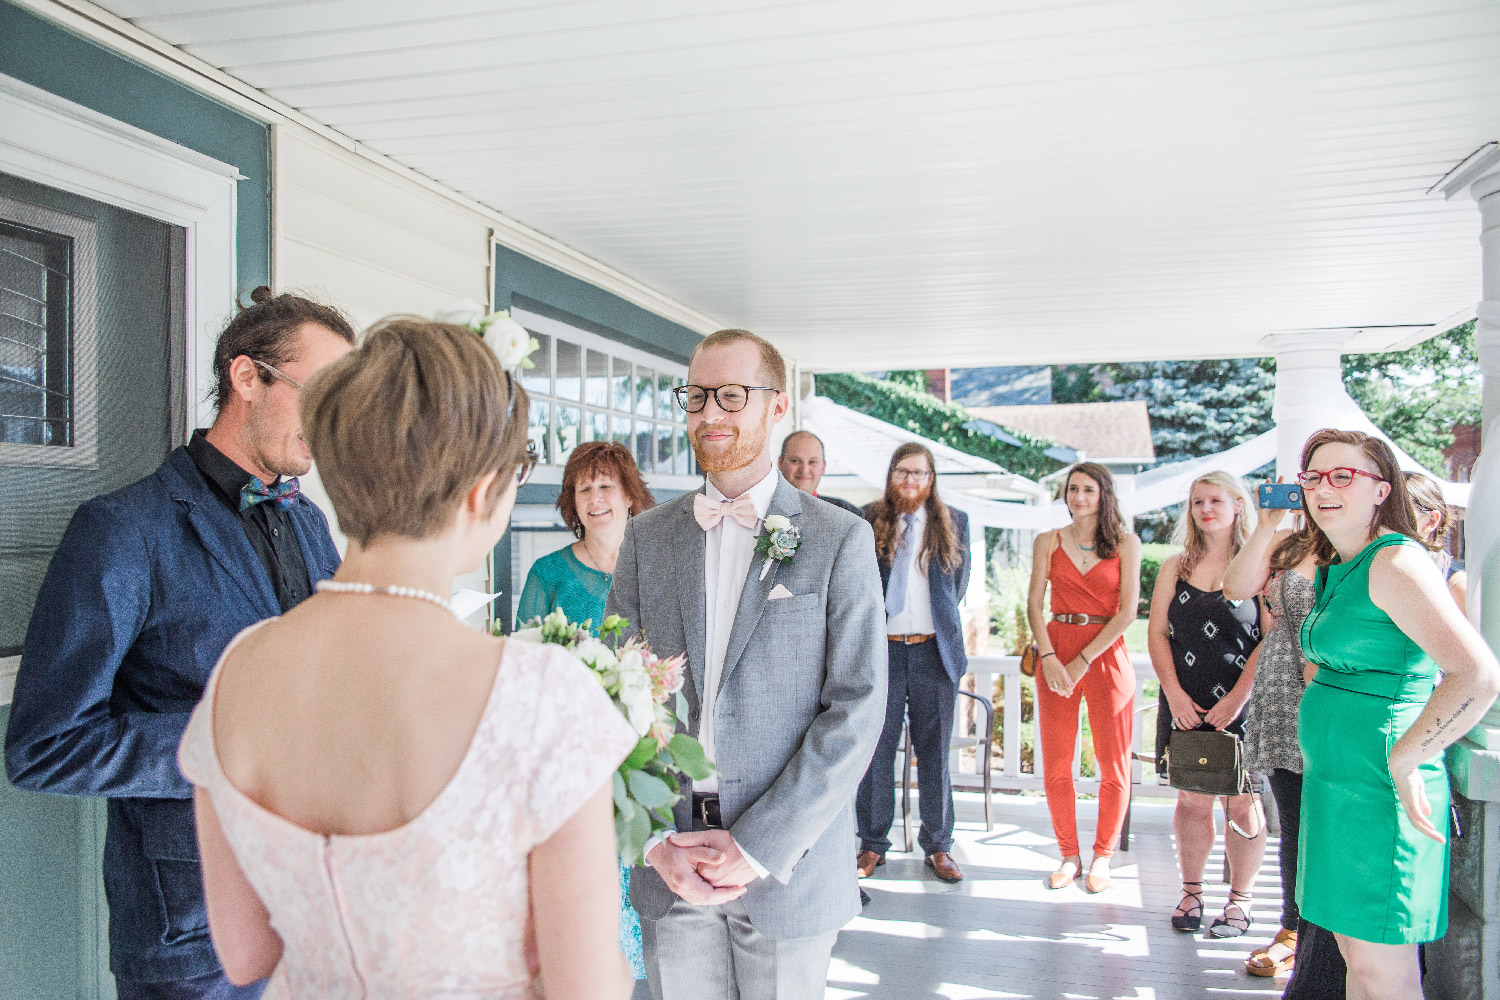 Bethany and Greg exchanging wedding vows on their front porch of their Cleveland Ohio home Lea Marie Photography